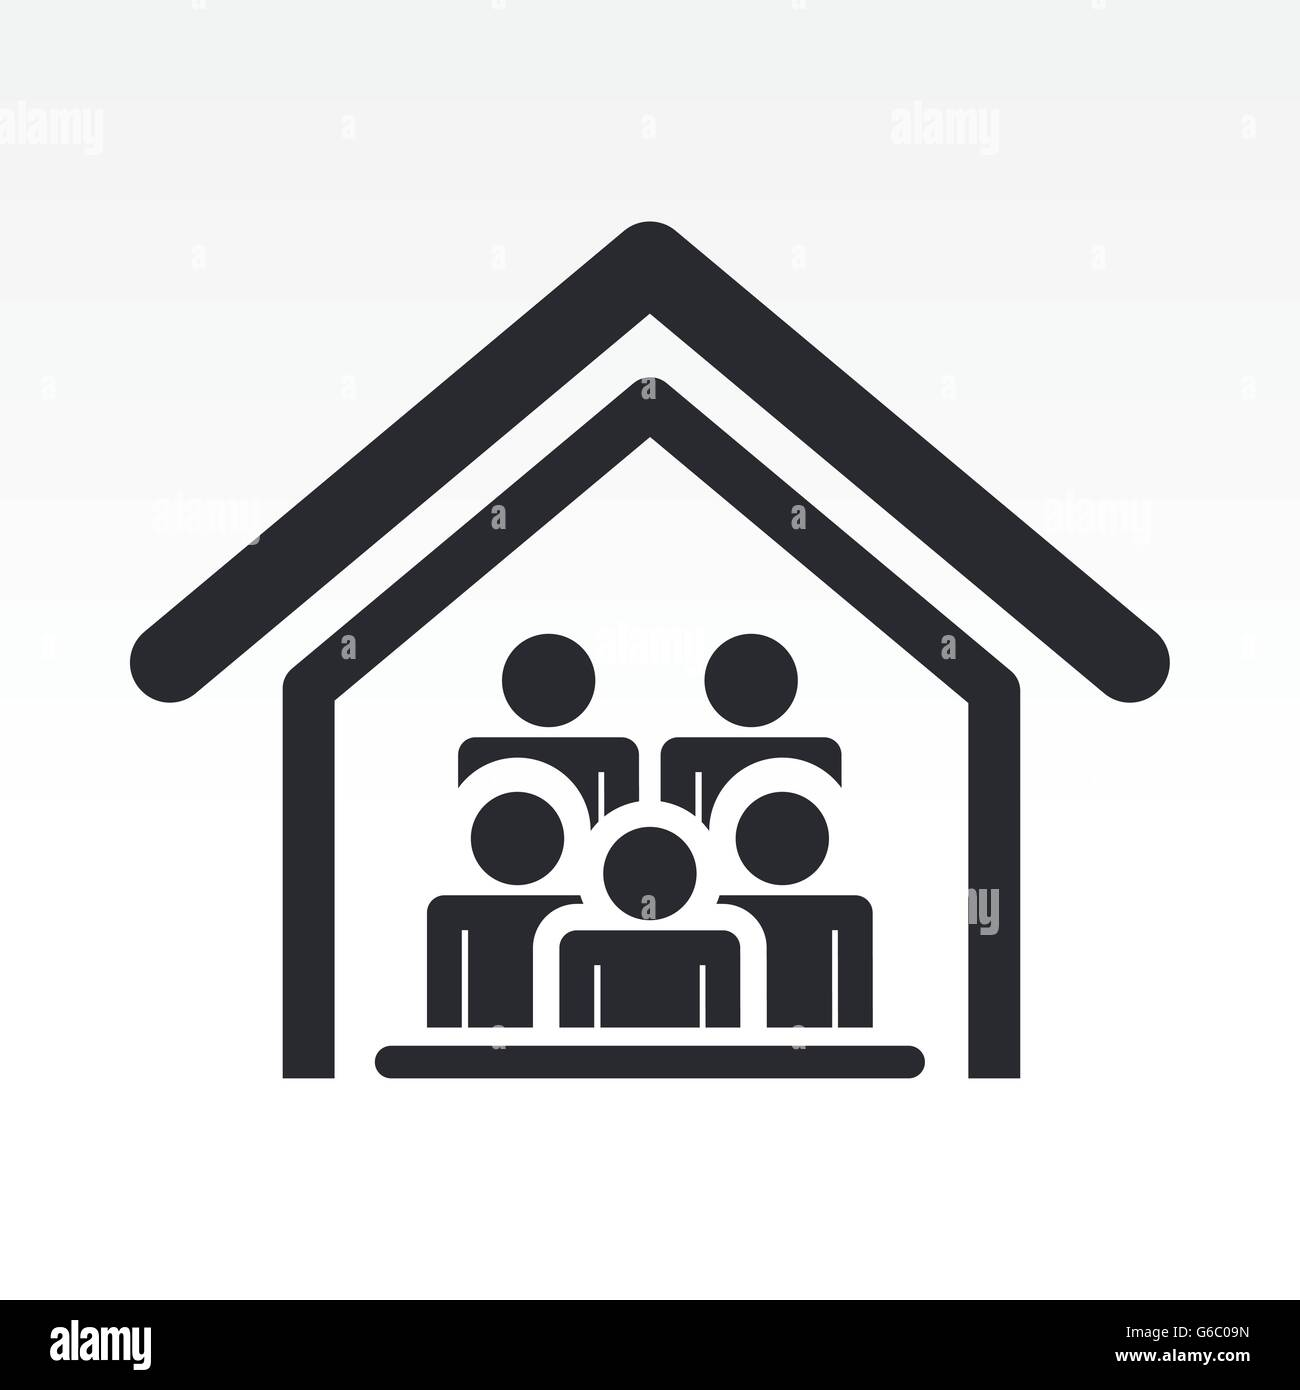 Vector illustration of guests house icon - Stock Vector